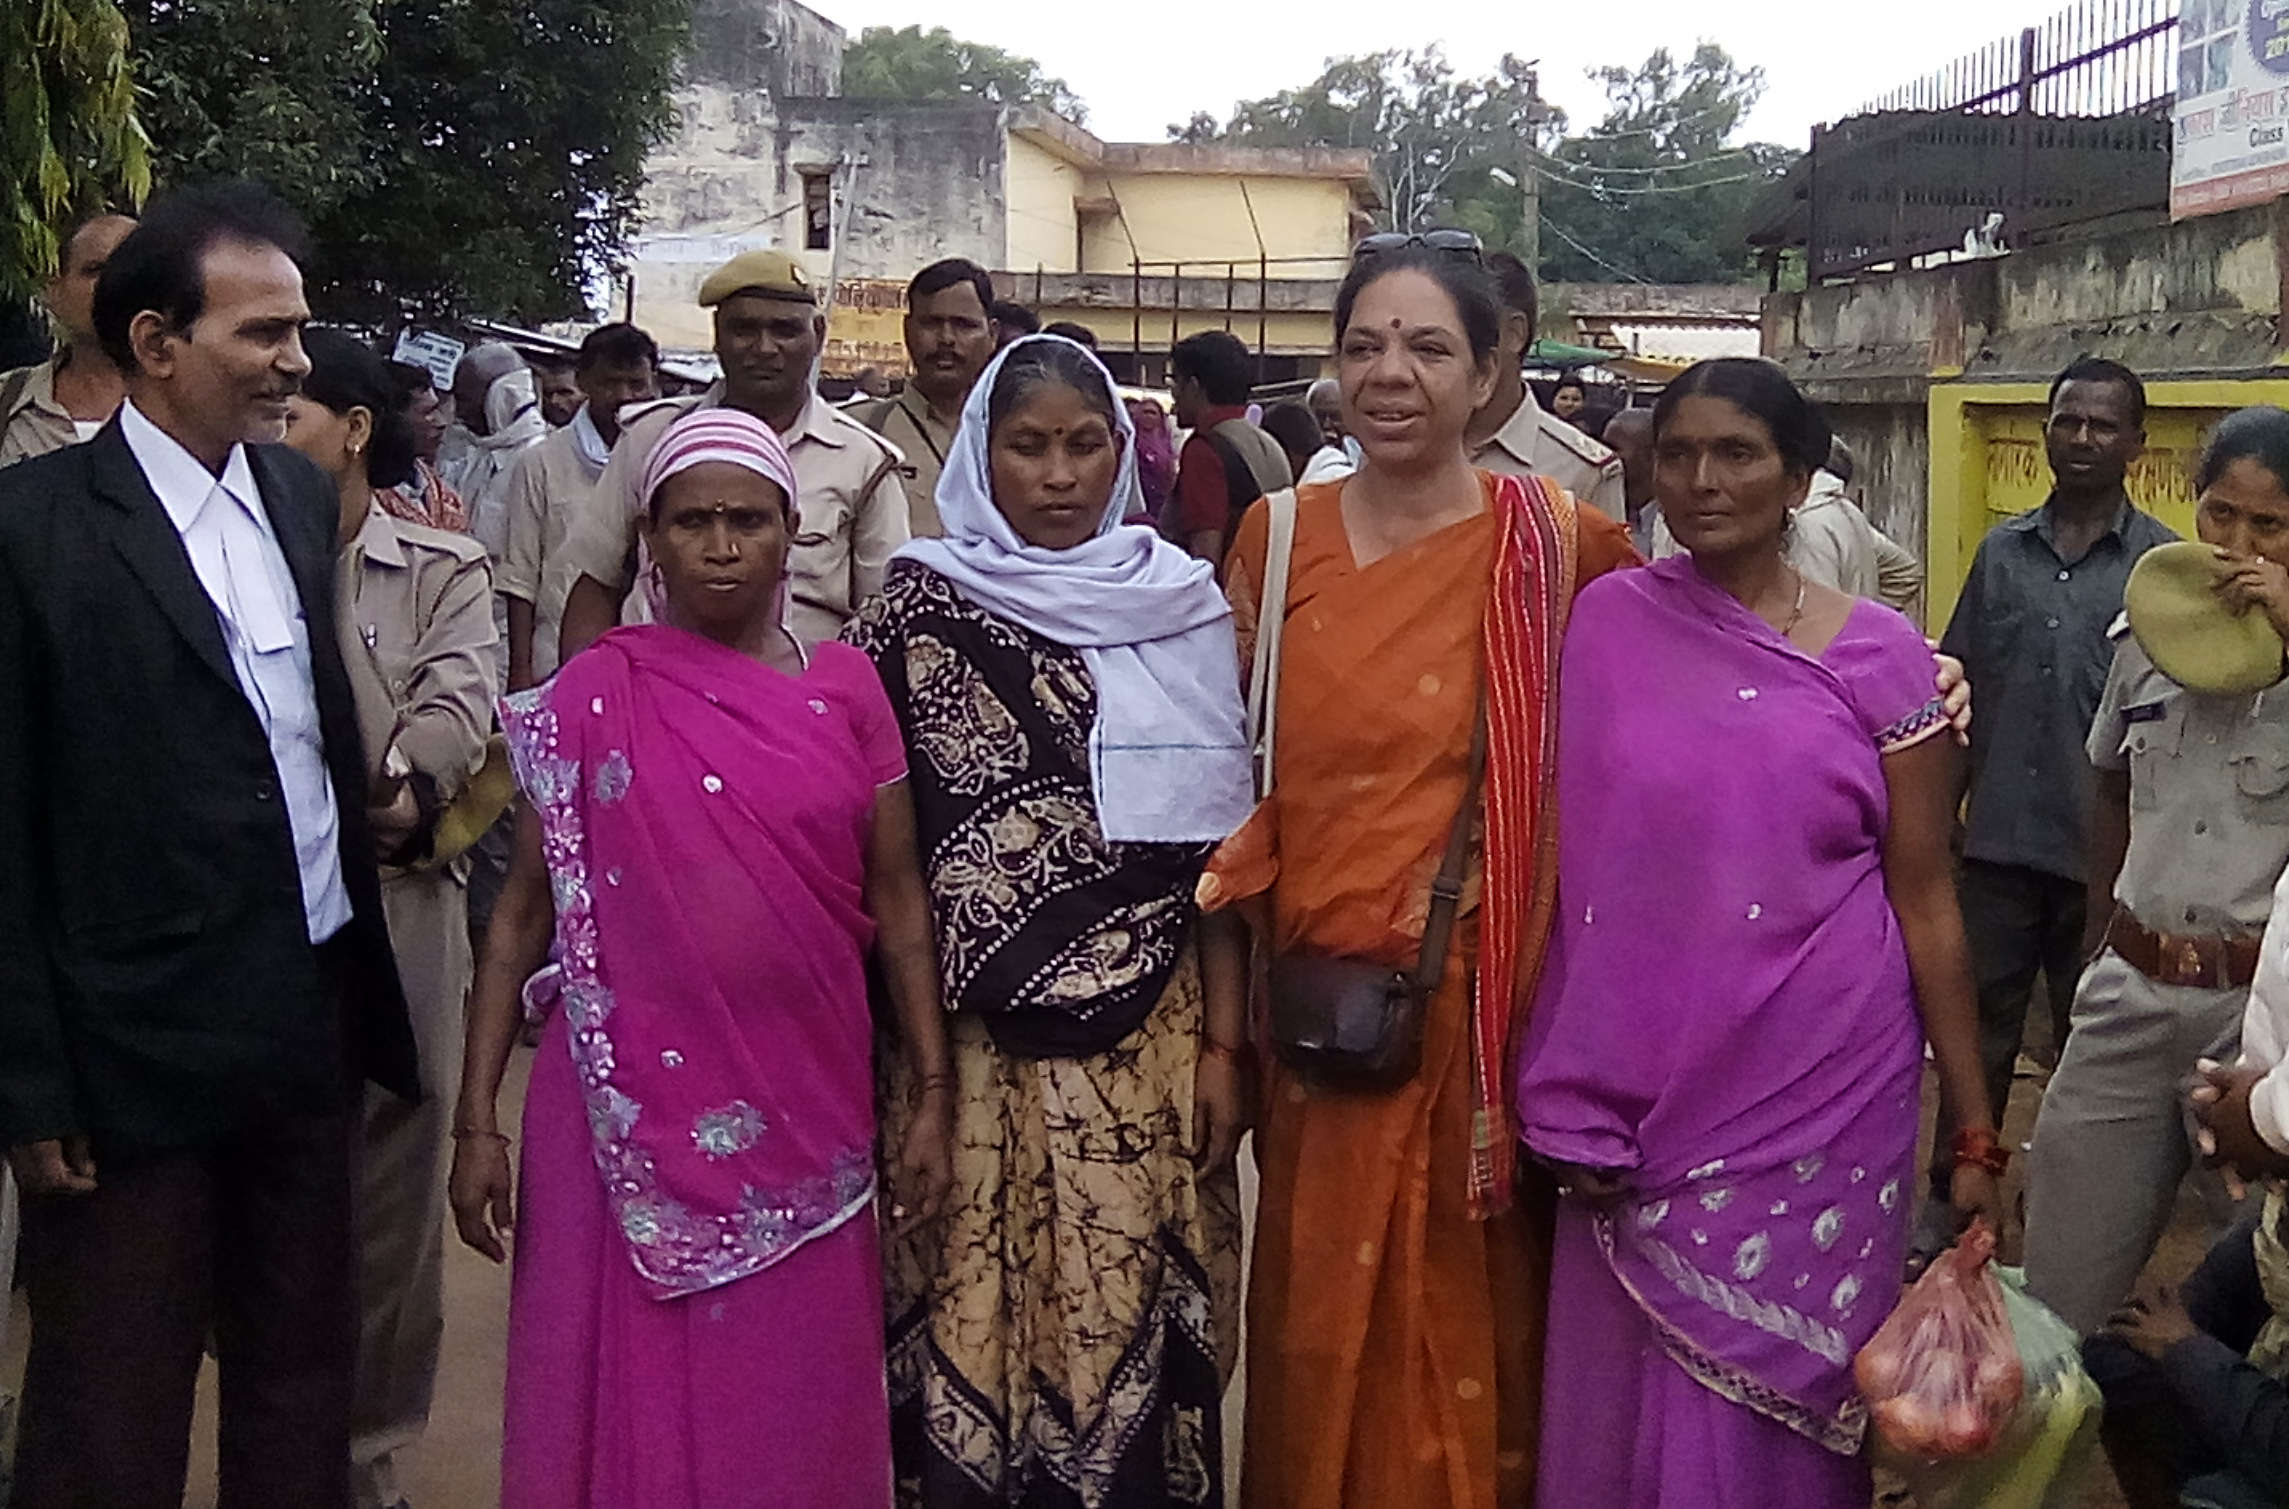 Threat to the State? Roma, Sukalo and Rajkumari being taken for court hearing in police custody.